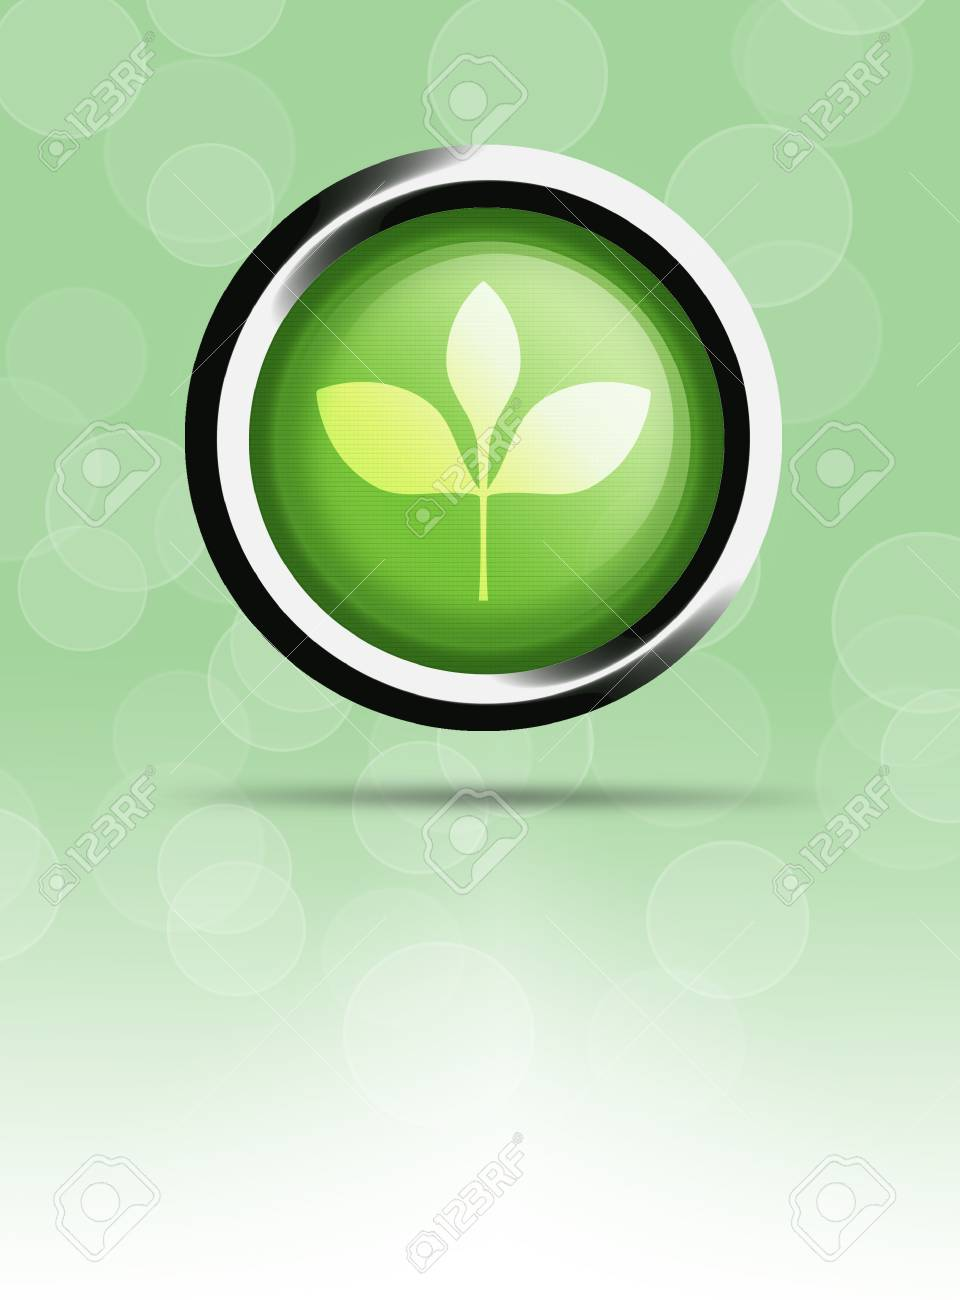 Natural background button. Stock Photo - 15221441